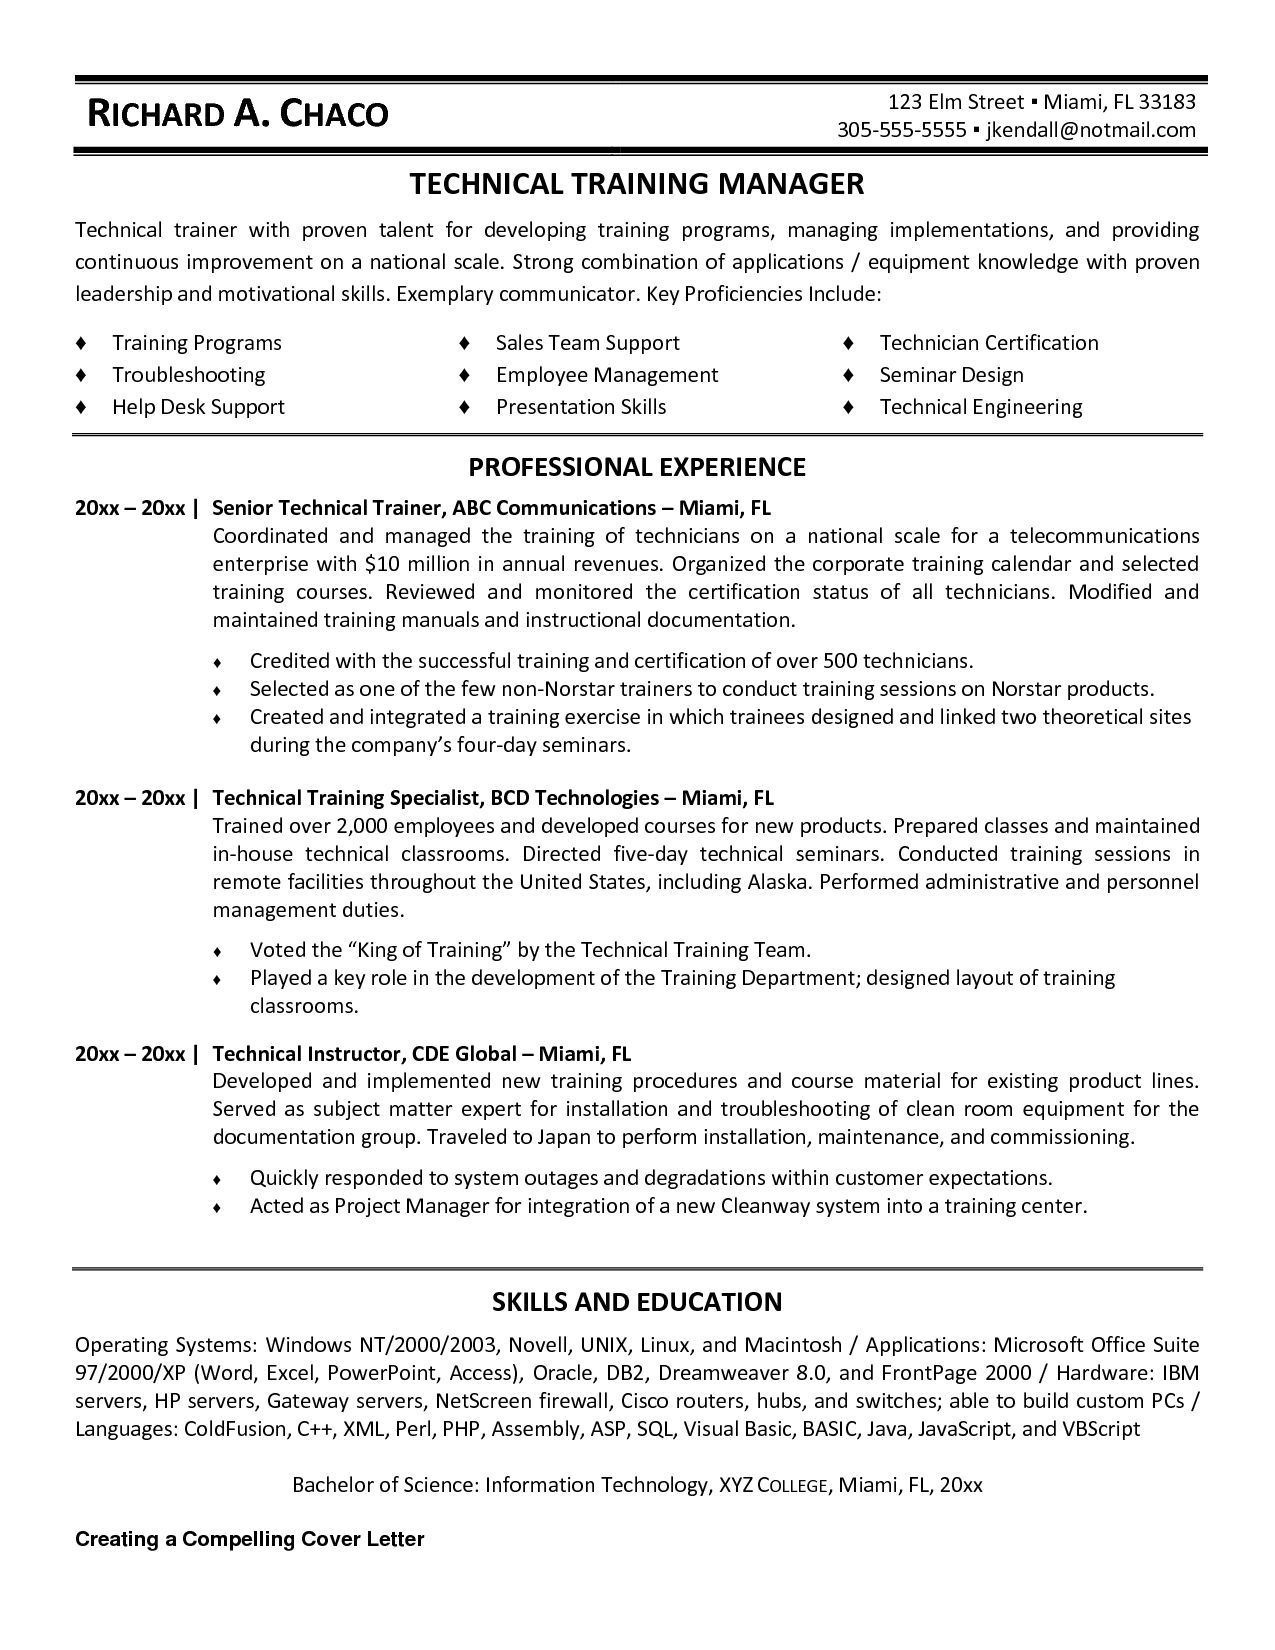 personal trainer resume objective personal trainer resume sample gallery photos. Resume Example. Resume CV Cover Letter